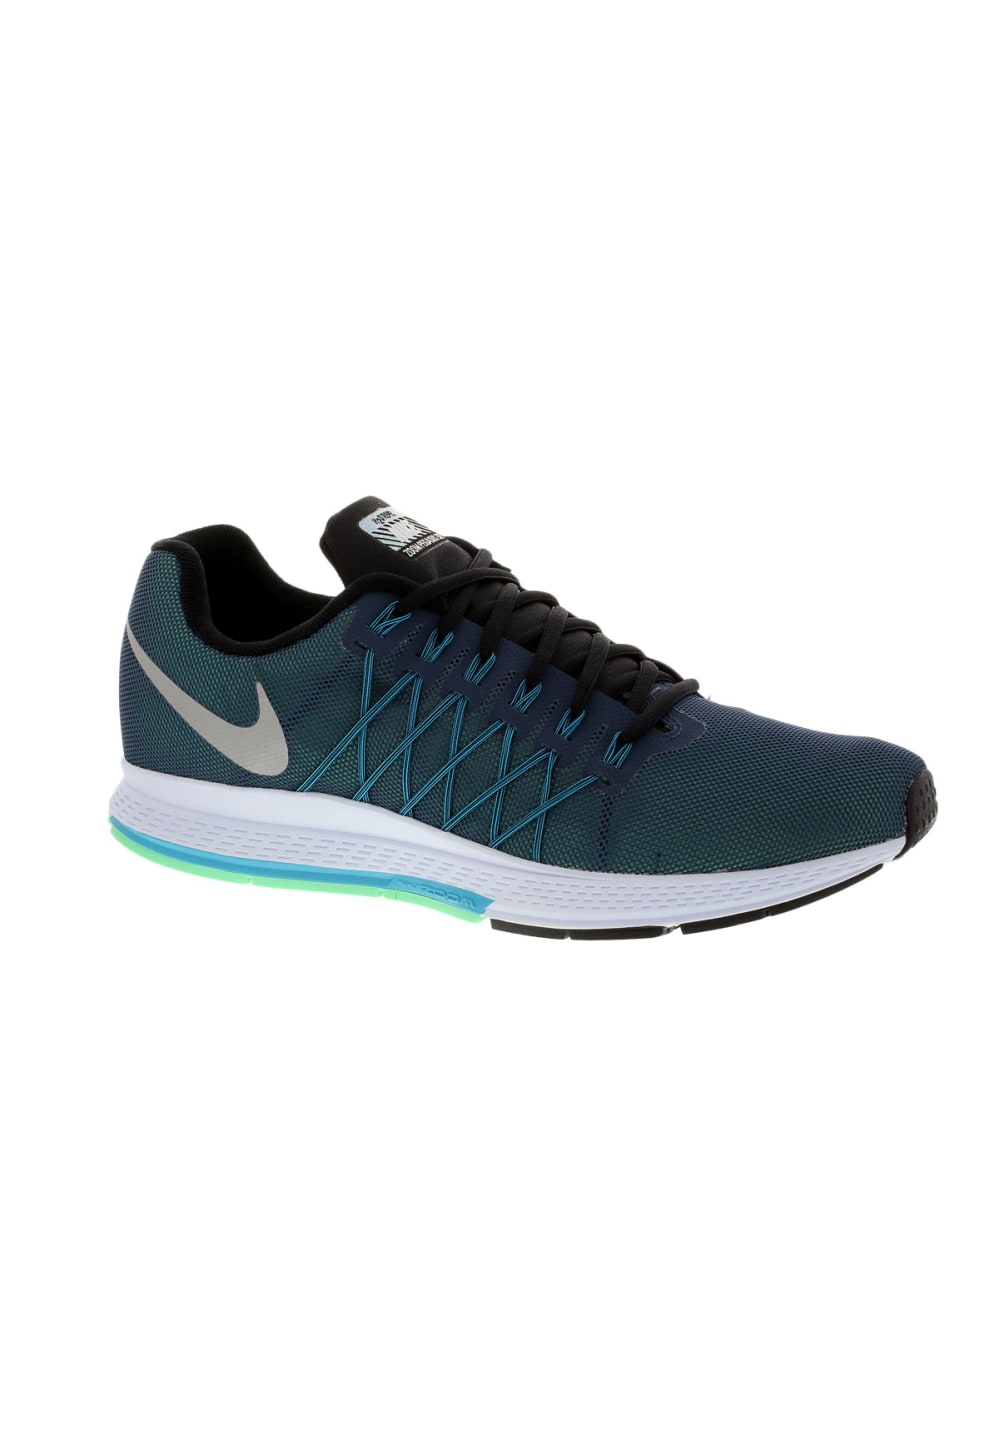 newest 35397 e734c Nike Air Zoom Pegasus 32 Flash - Running shoes for Men - Black